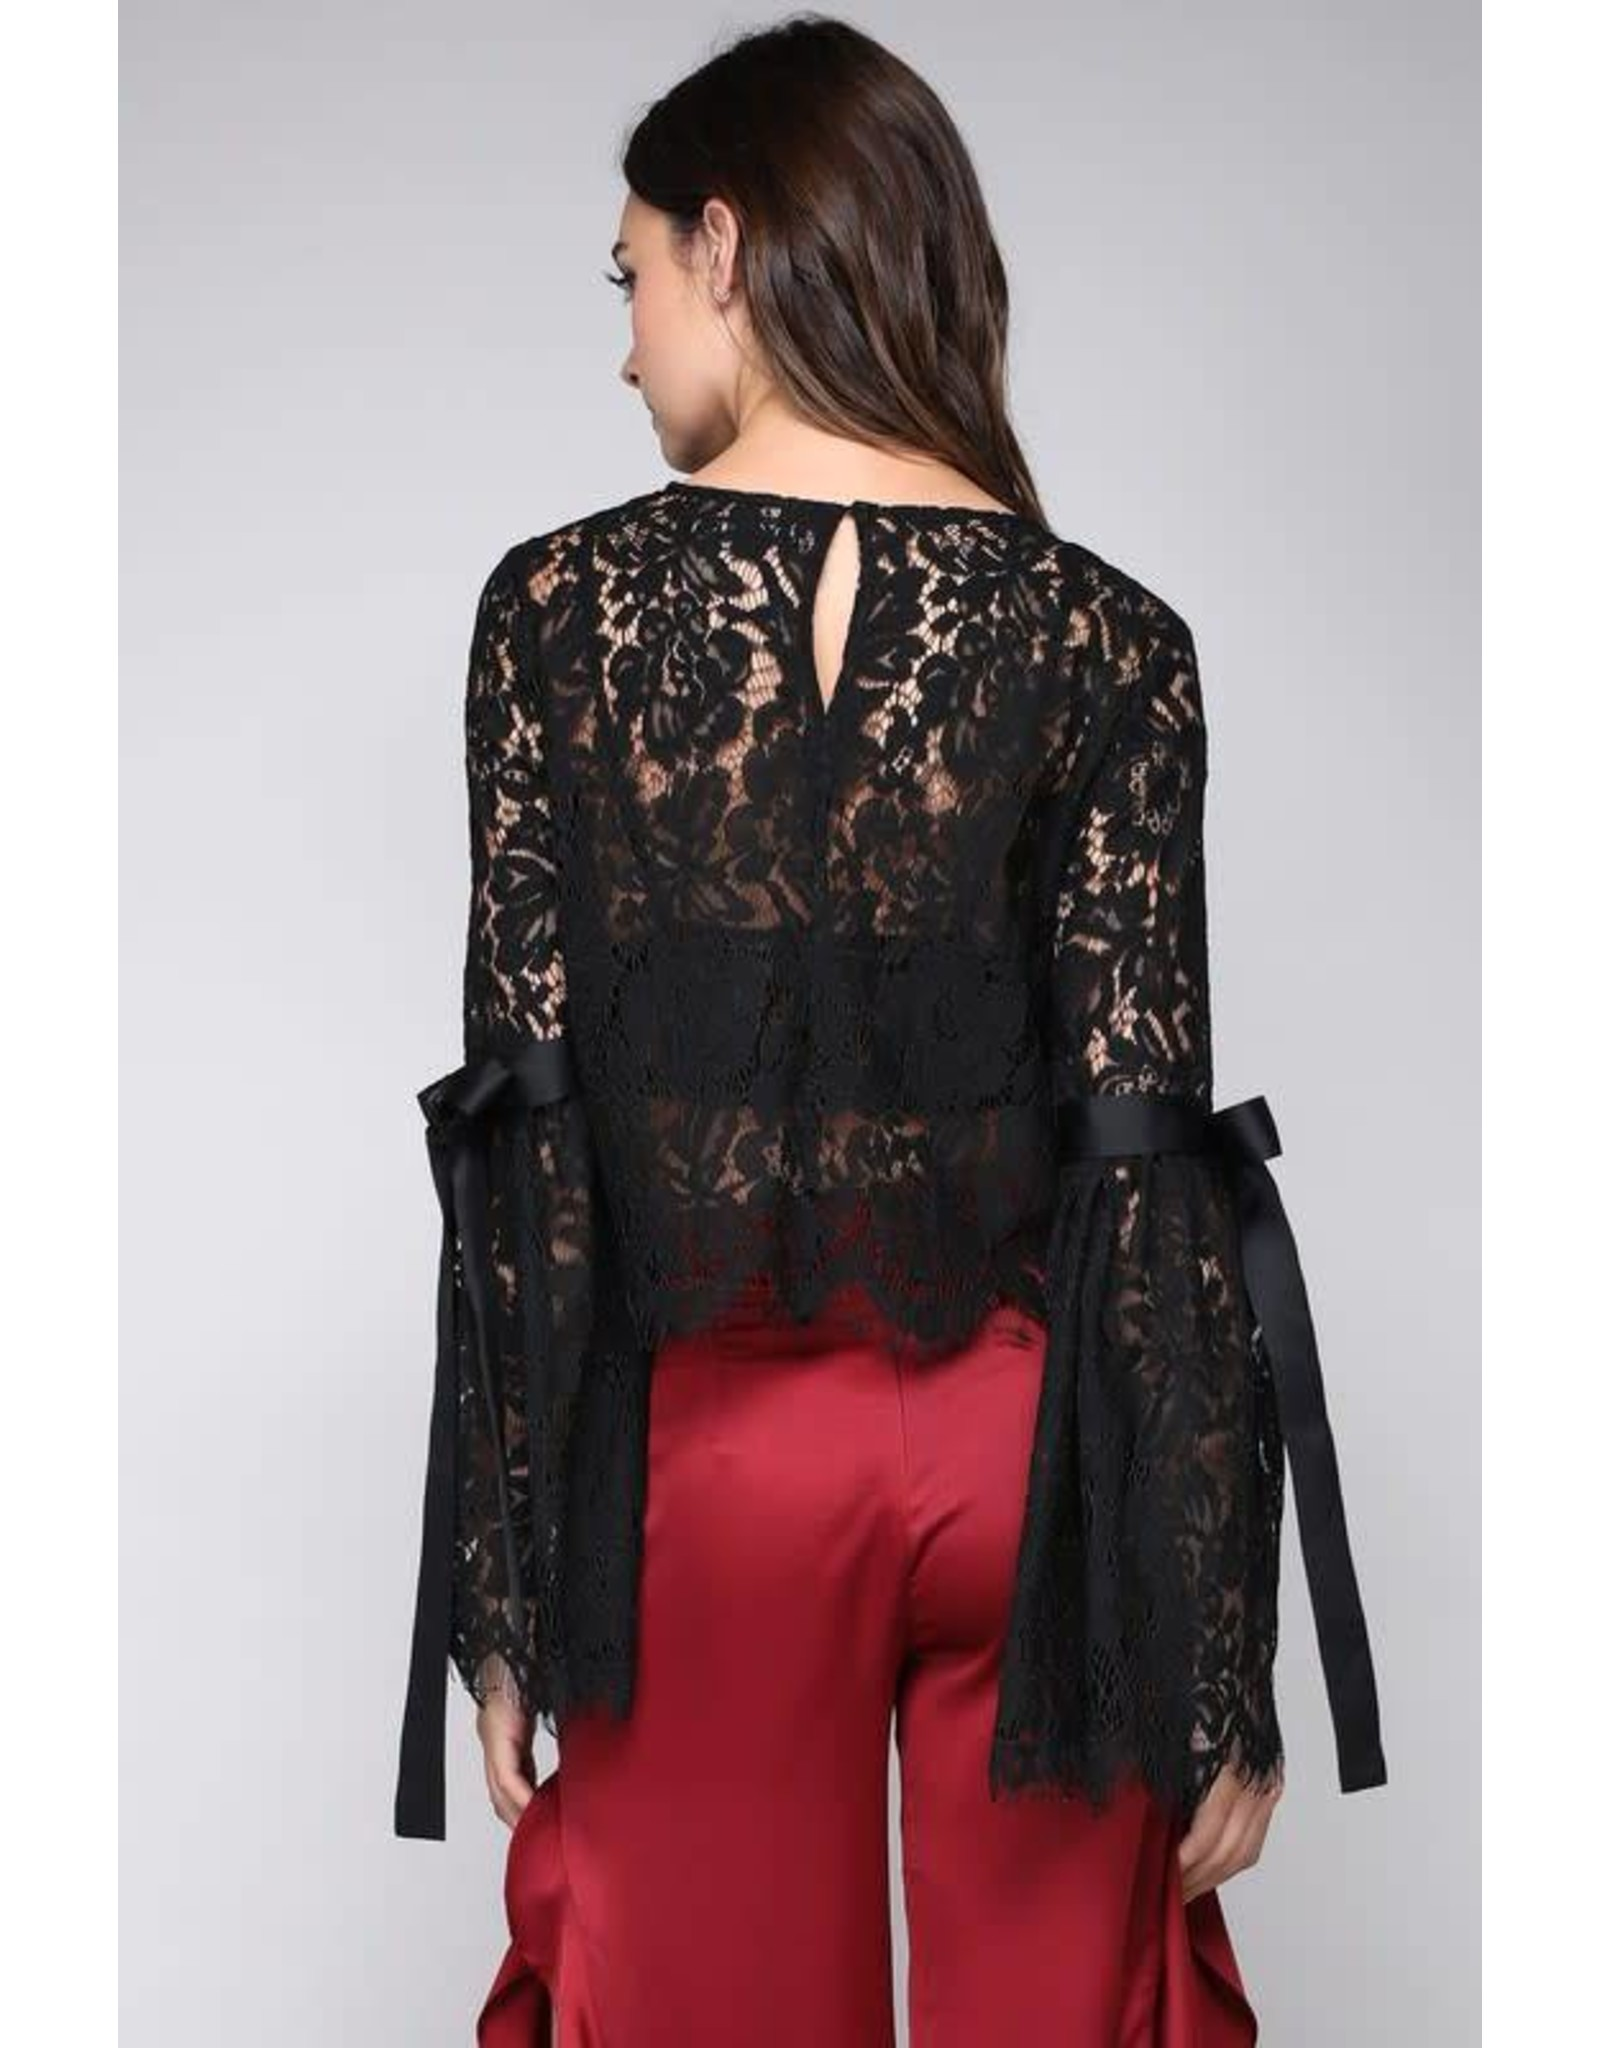 The Perfect Storm Top